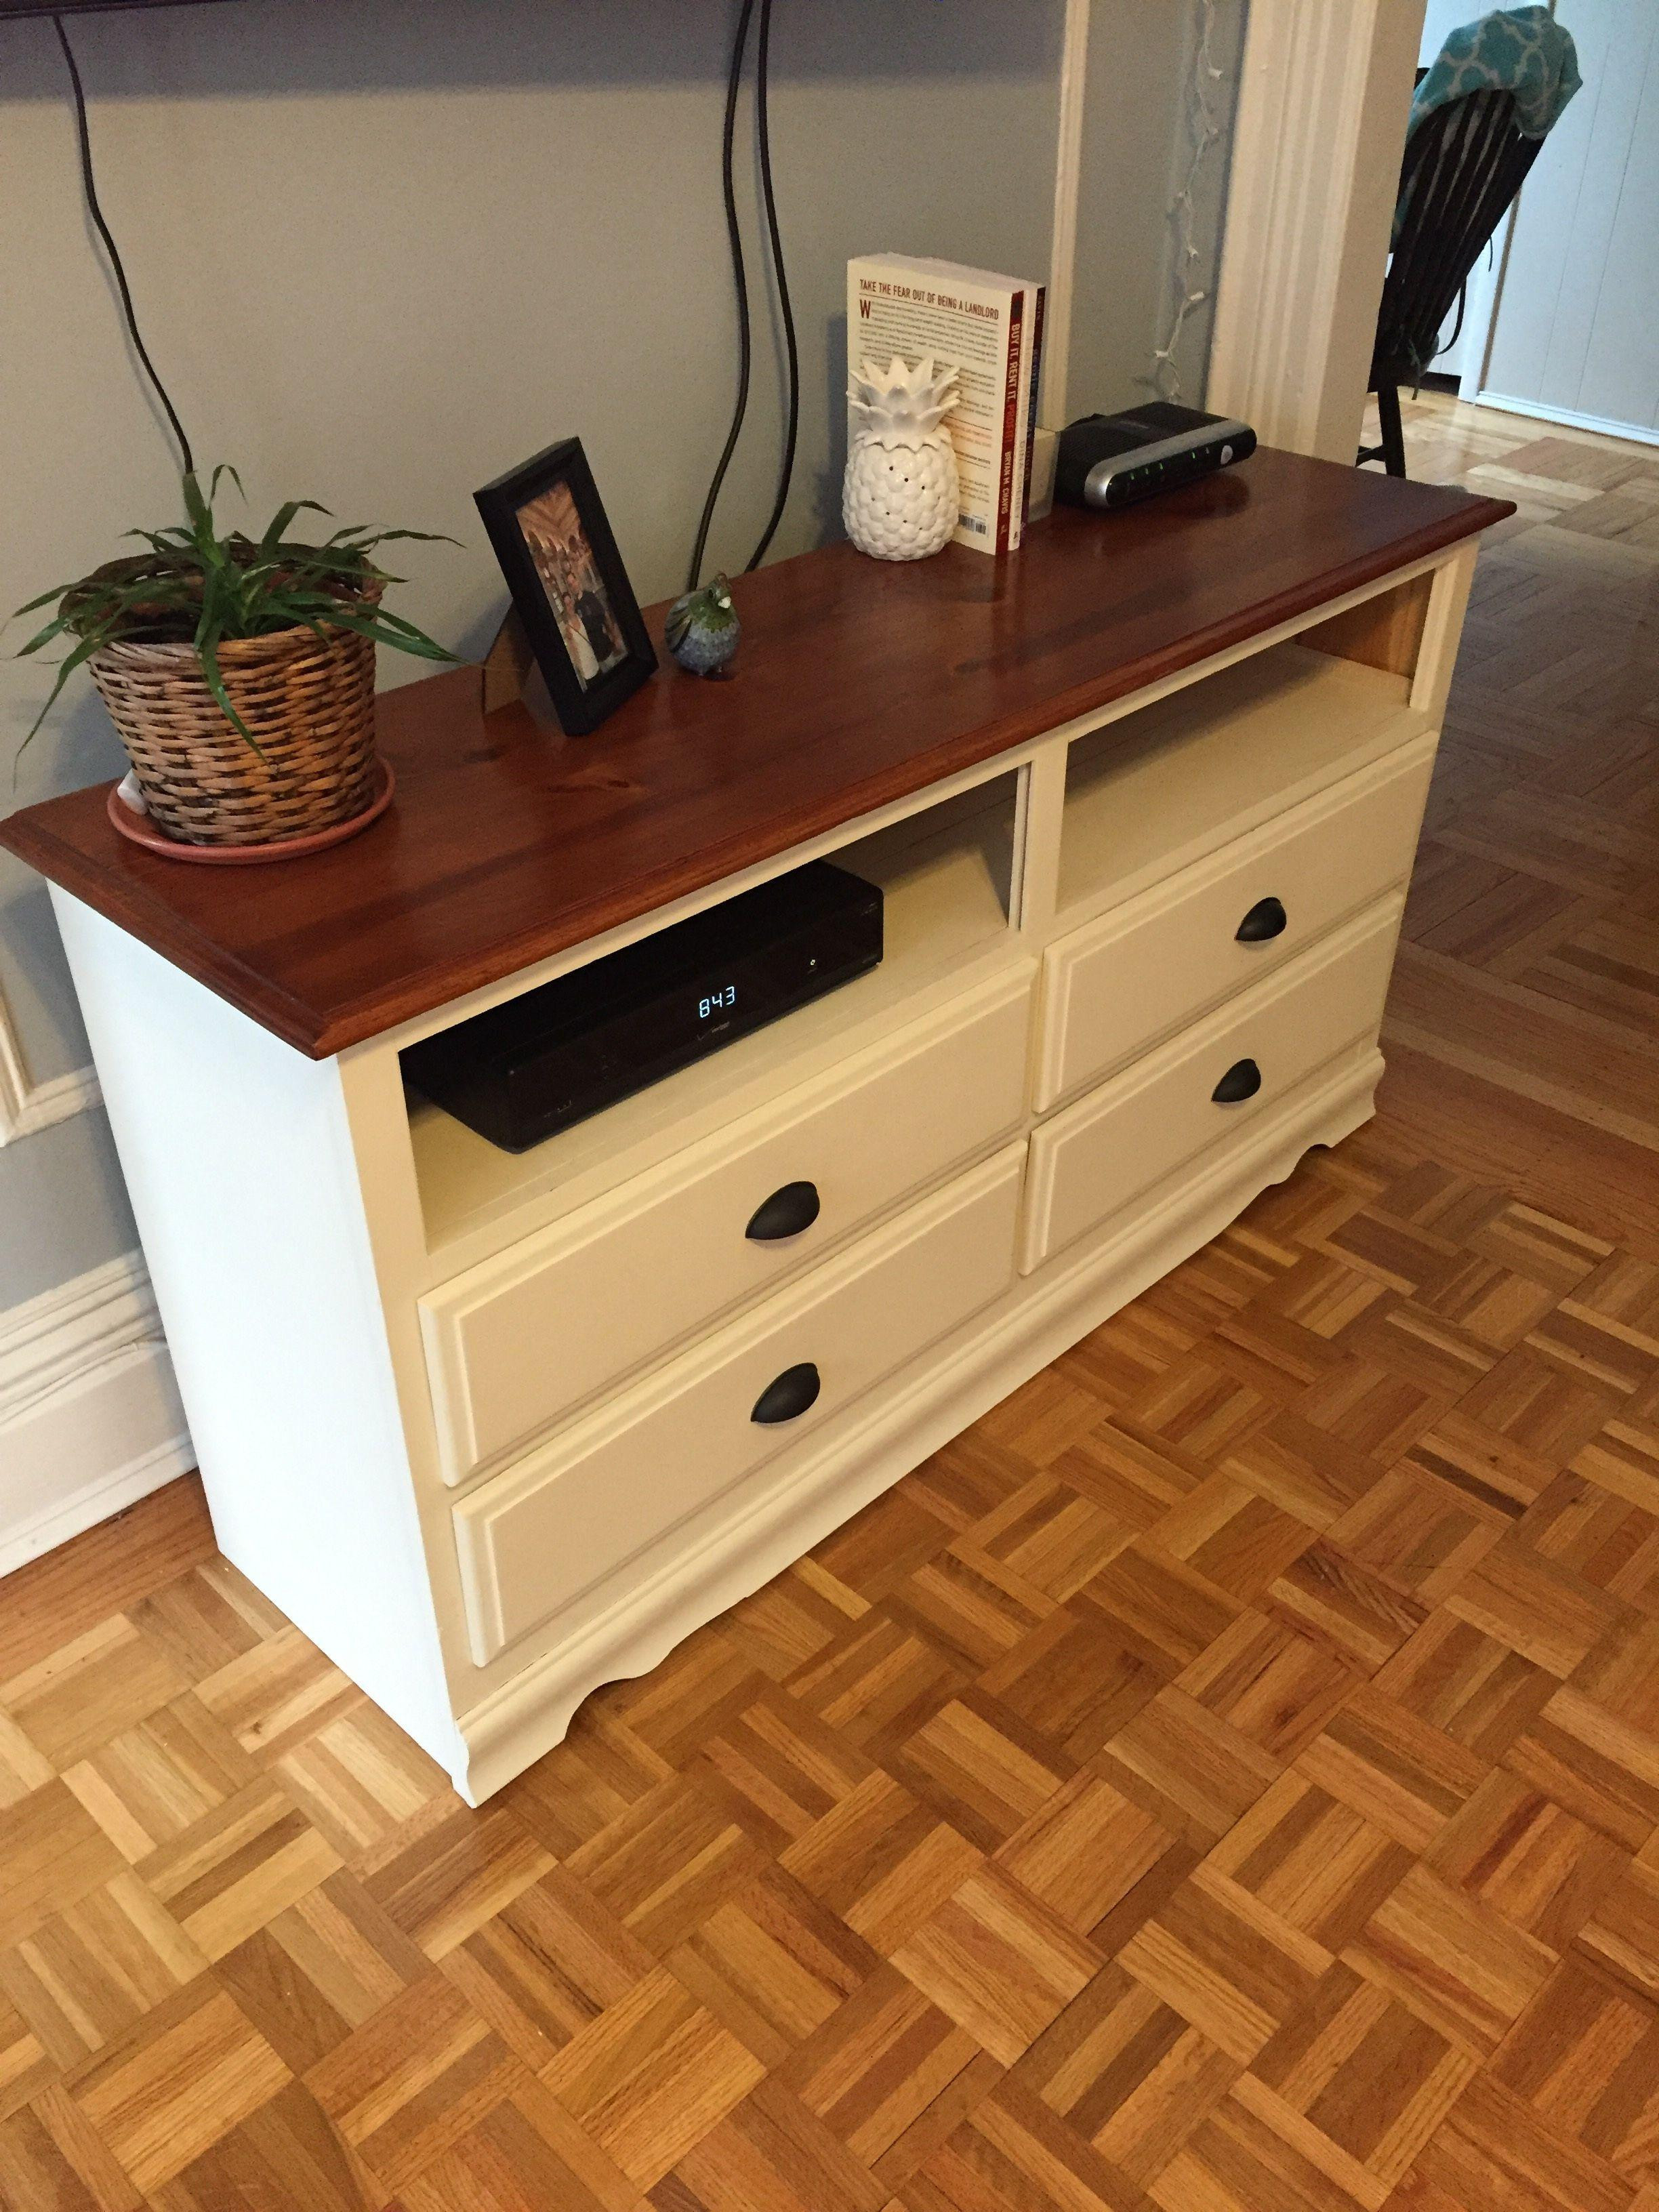 Grey Hardwood Floors for Sale Of Diy Wood Tv Stand New Grey Wood Tv Stand Genuine Diy Corner Tv Stand Throughout Diy Wood Tv Stand New Dresser to Tv Stand Crafts Diy Pinterest